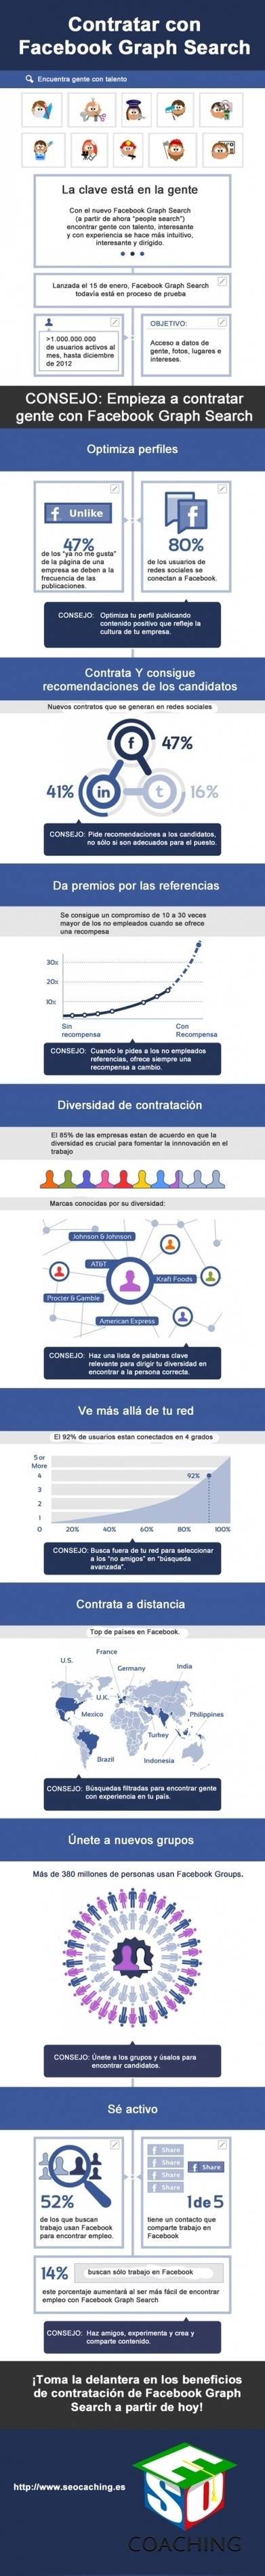 Contratar con FaceBook  #infografia #infographic #socialmedia | Managing Technology and Talent for Learning & Innovation | Scoop.it